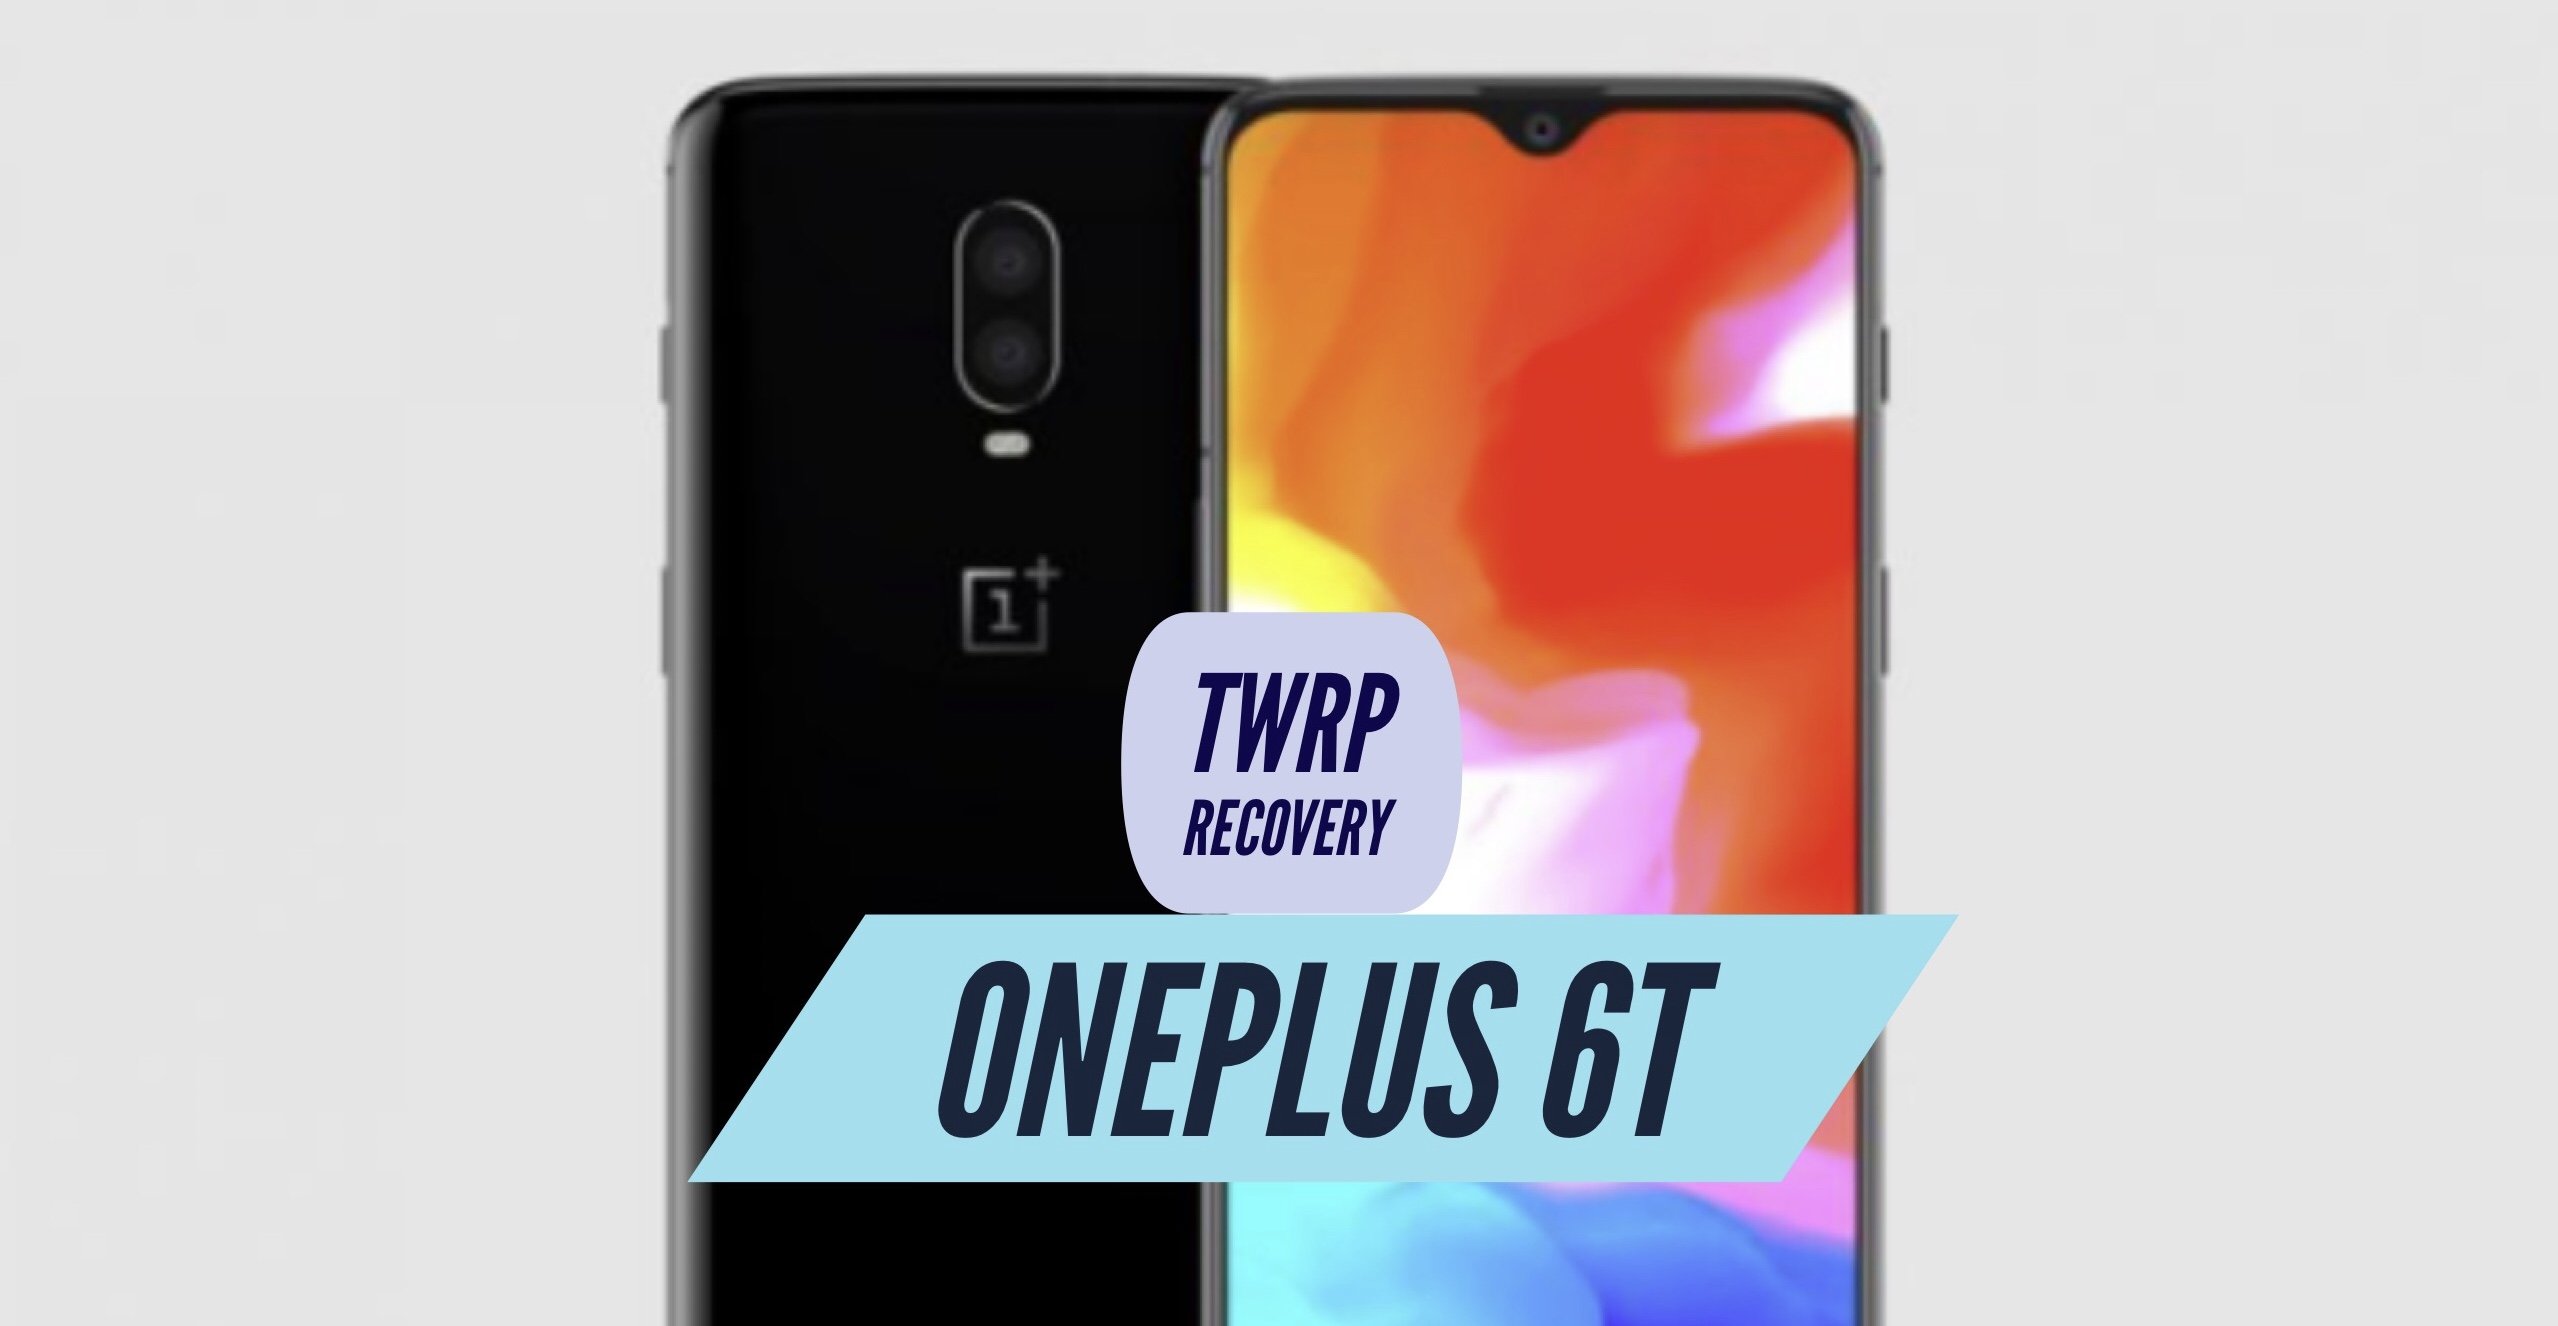 How to Install TWRP Recovery on OnePlus 6T? Official Guide!